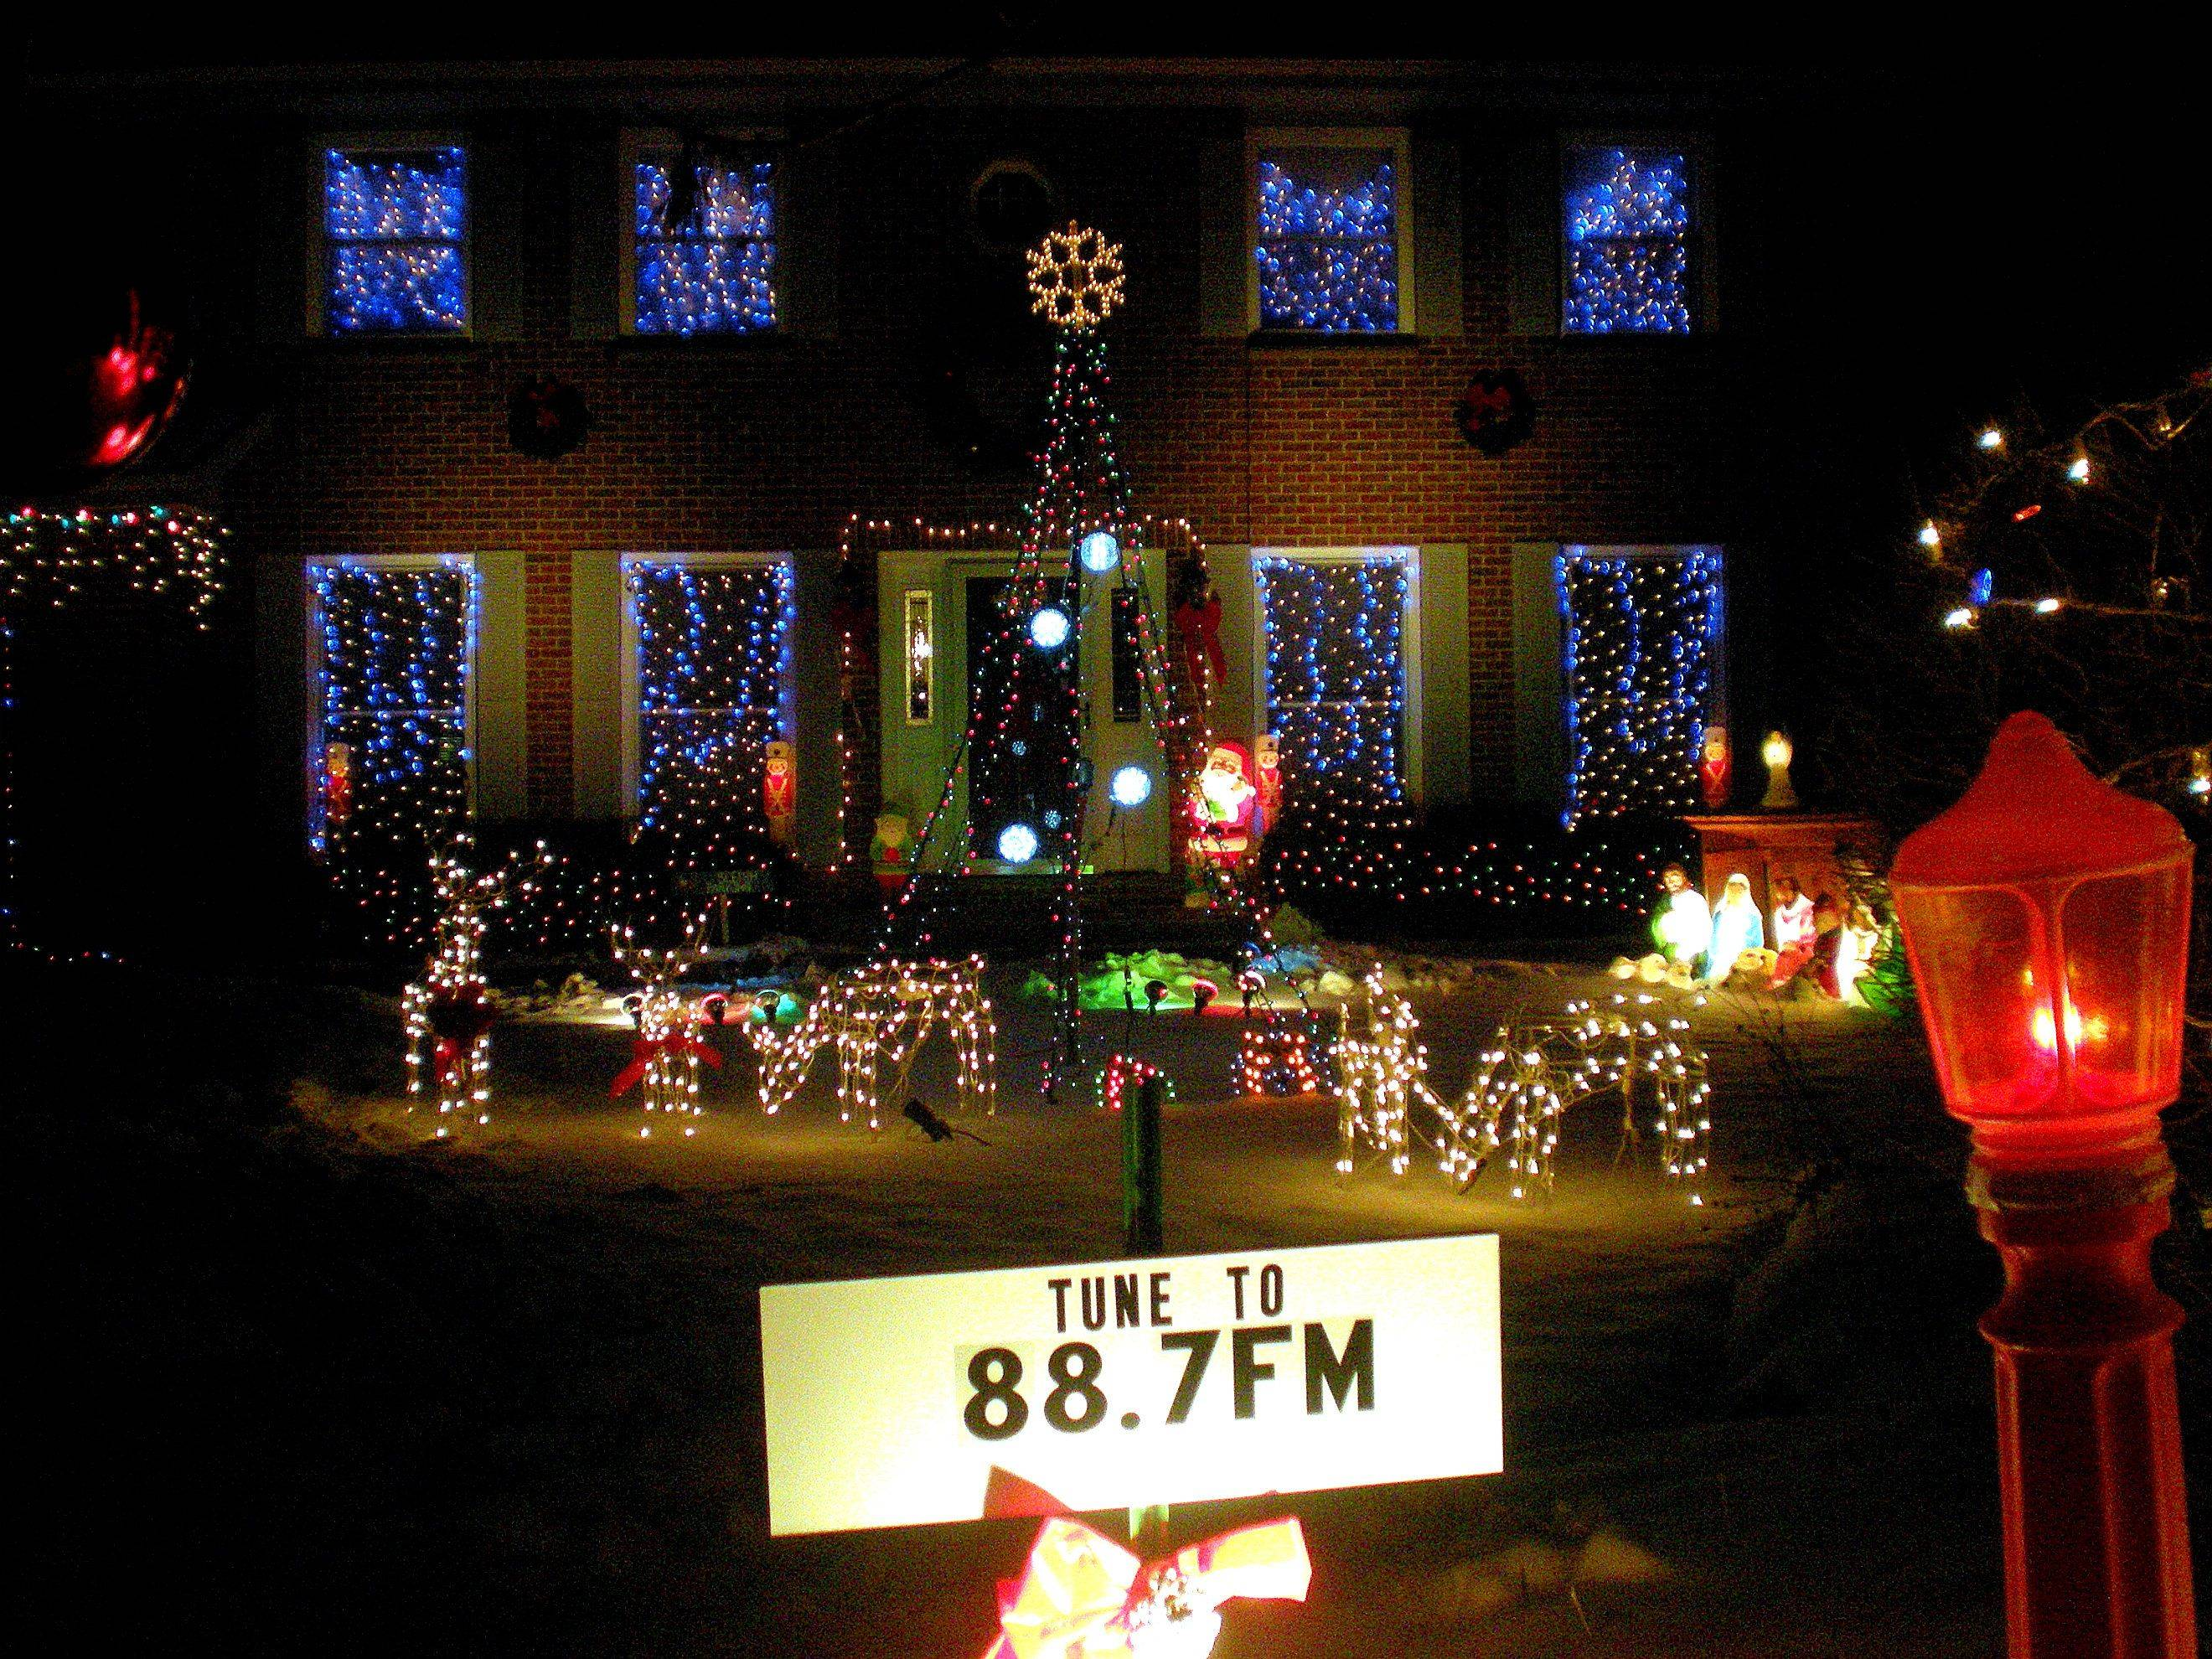 At Charlie Suhling's home at 4285 Crabtree Court in Gurnee, the display is run by a computer and the lights are synced to music.